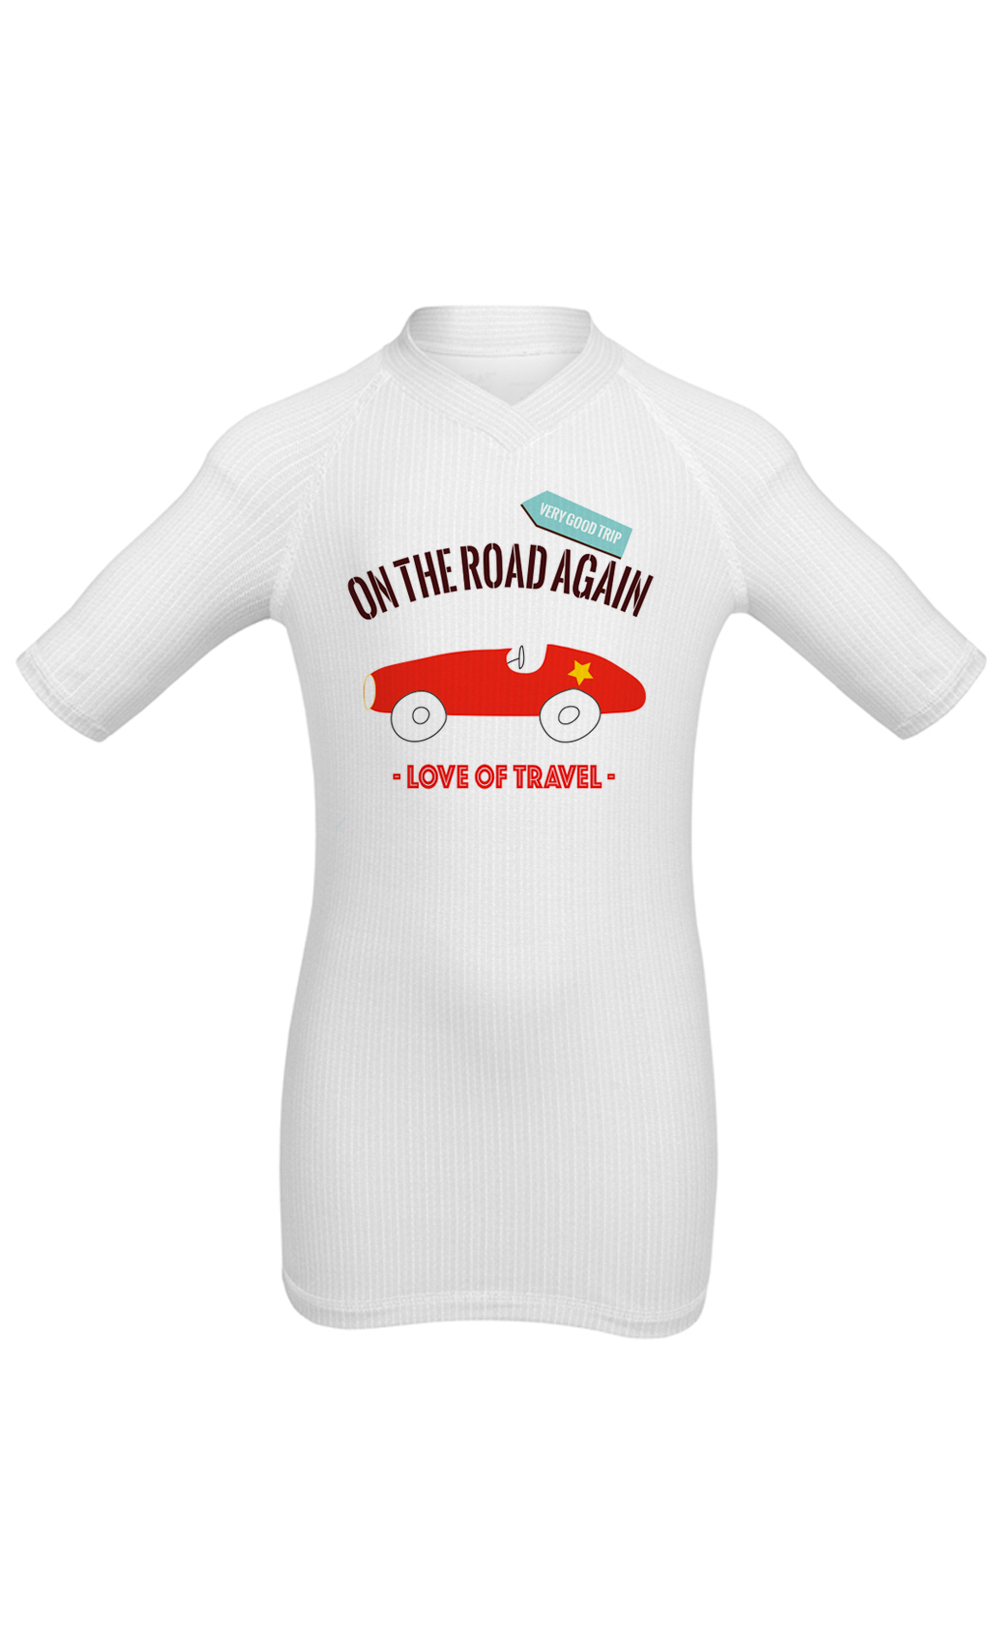 Wearismyboat t shirt enfant On the road again love 11947 - Vêtements Wear Is My Boat : la solution contre le mal de mer et de transports